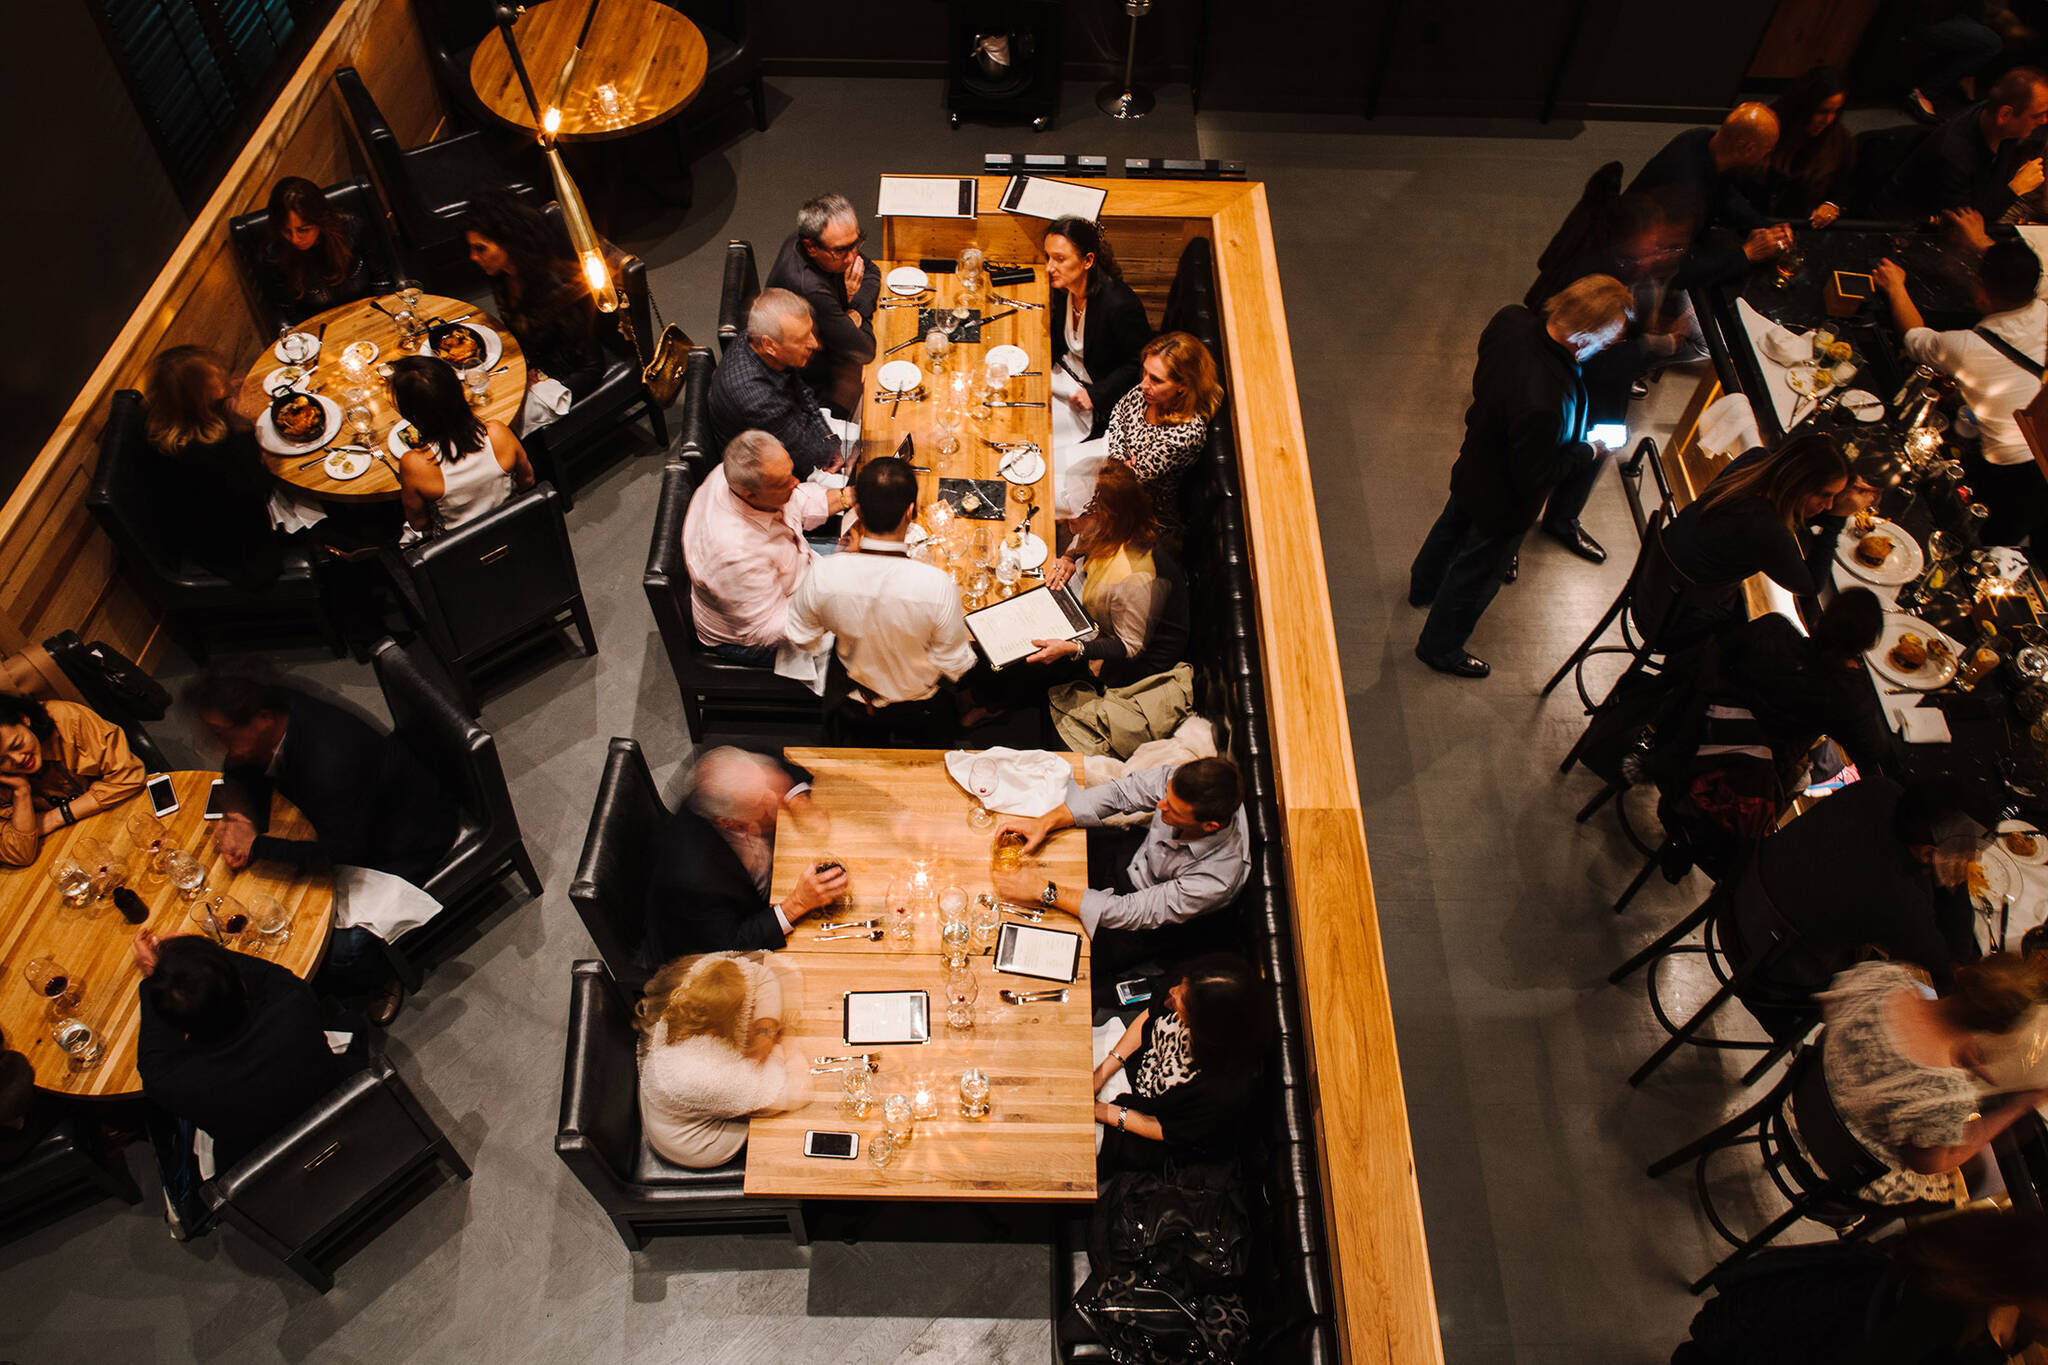 Crowded dining area of the American Cut Bar & Grill project located at 495 Sylvan Avenue in Englewood Cliffs, New Jersey designed by the architecture studio Danny Forster & Architecture